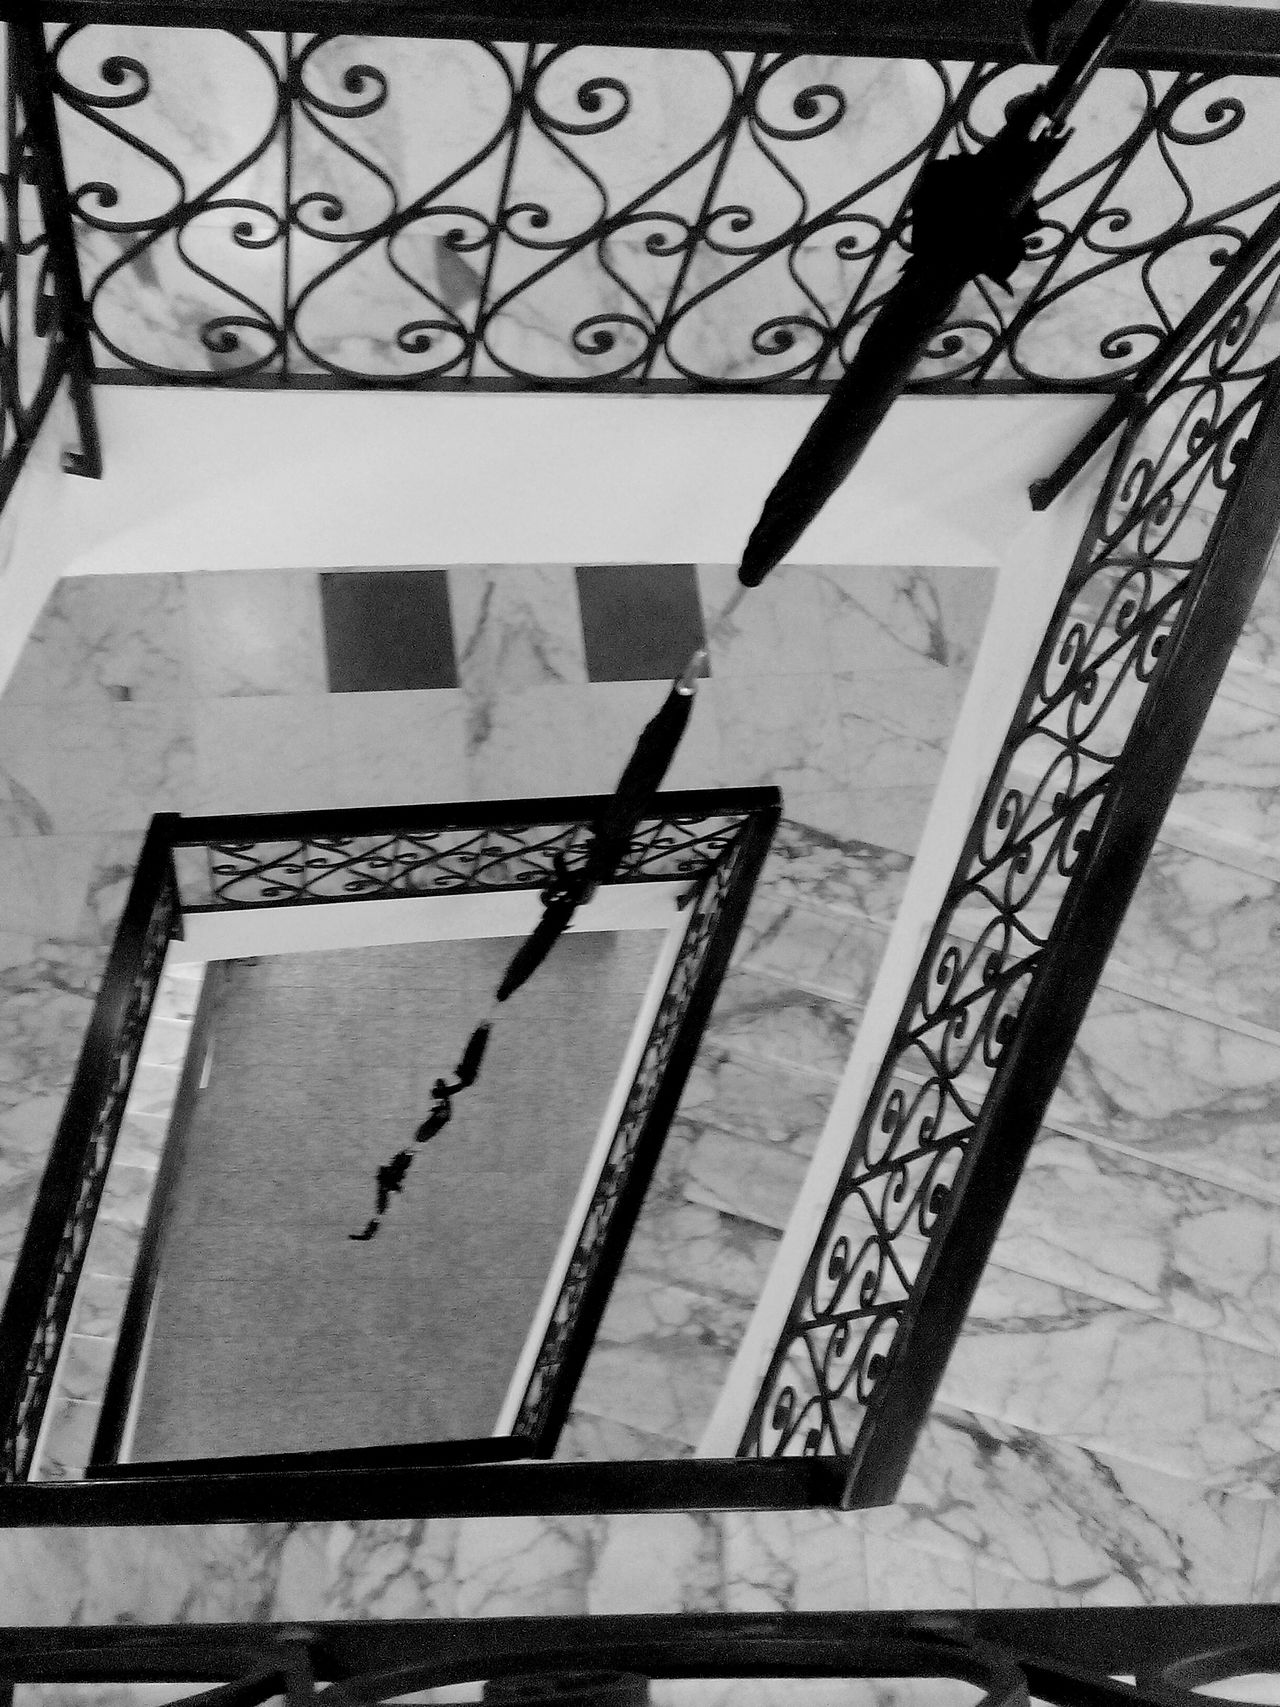 looking down Architecture Built Structure No People Indoor Photography Blackandwhitephoto Eyeem Black And White Photography Eyeem Black & White Eyeem Black And White Collection Stairs Indoors  Museum Stairs_collection Umbrellas Art Stairs Geometry Geometry Eyeemphotography Check This Out From My Point Of View EyeEm Gallery Art Museum Eyeem Stairs Collection EyeEm Stairways Taking Photos Indoors